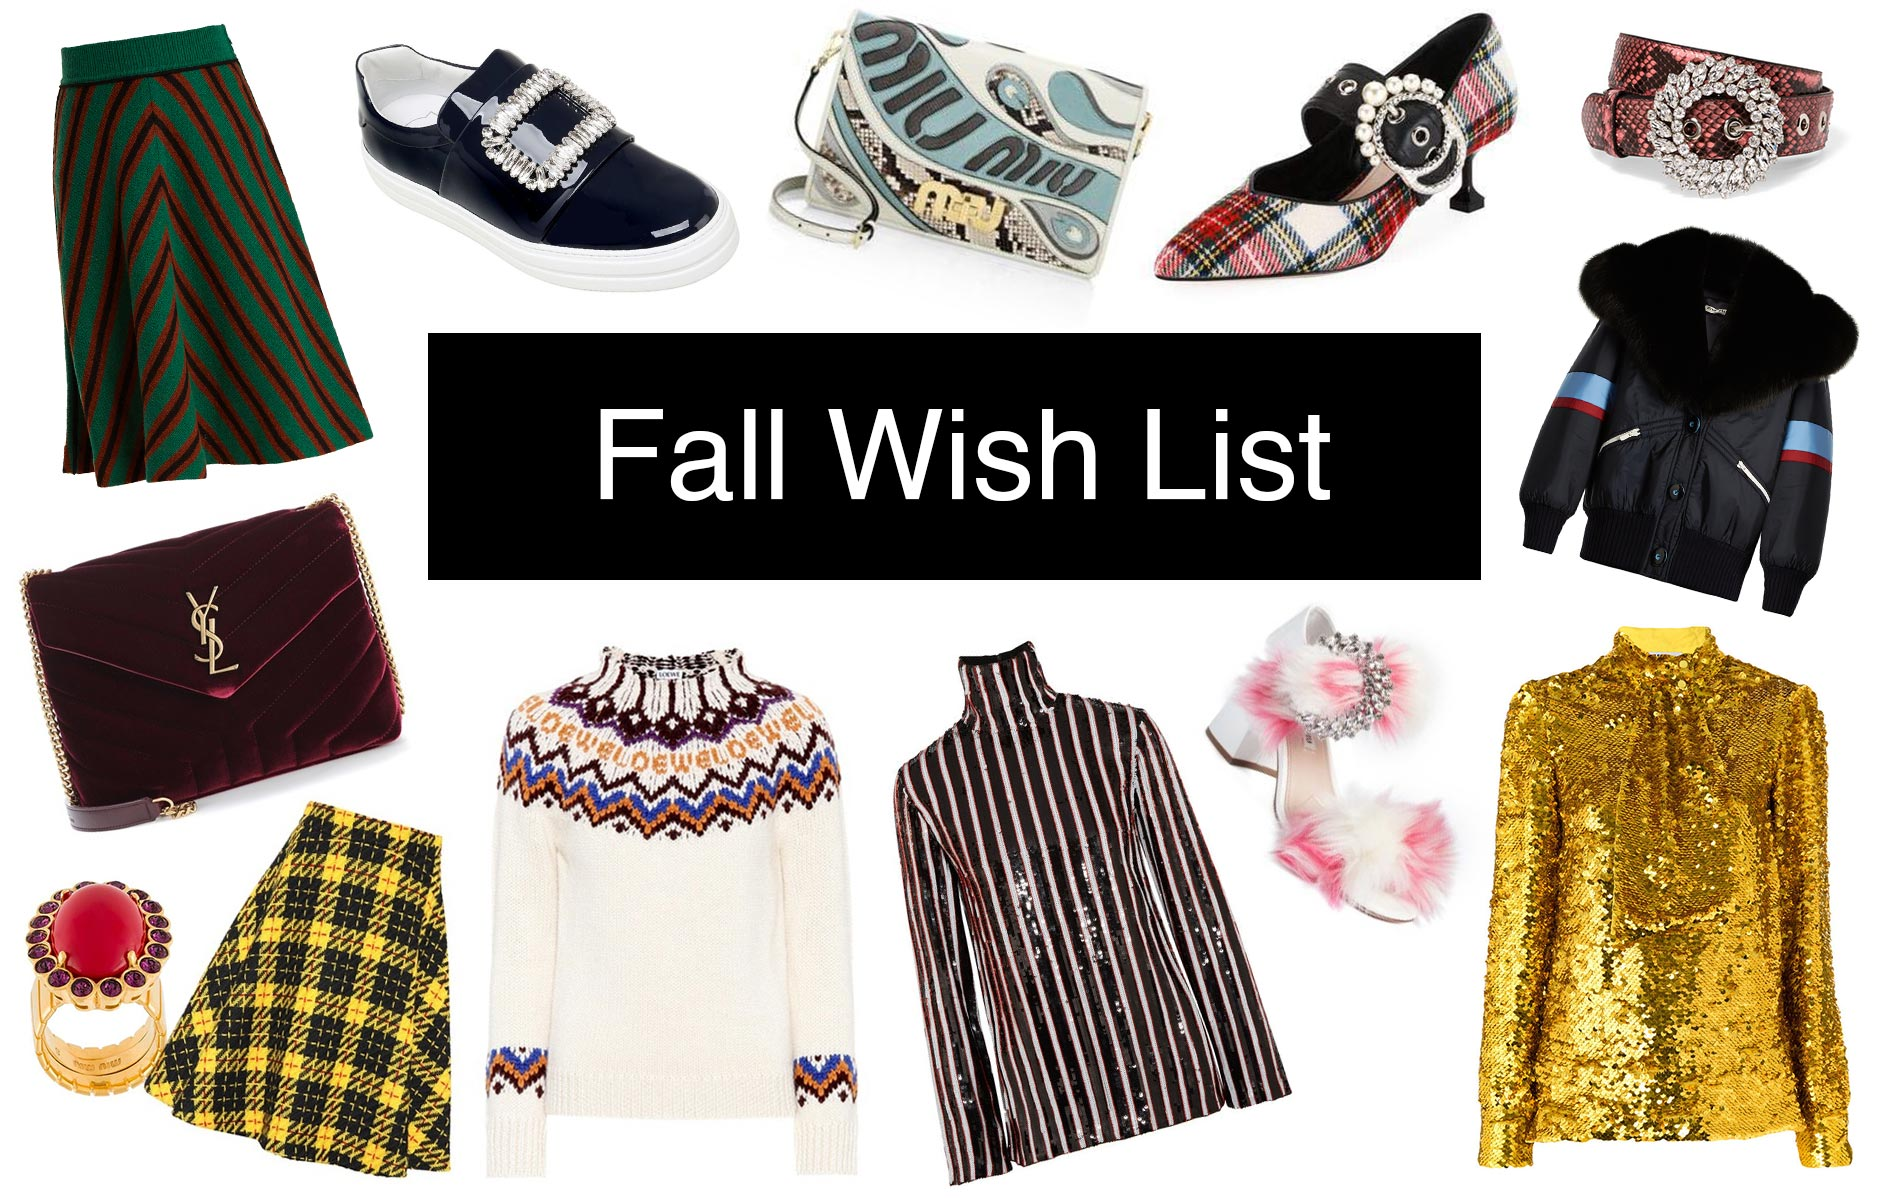 Anna Roufos Sosa of Noir Friday shares her fall wish list.